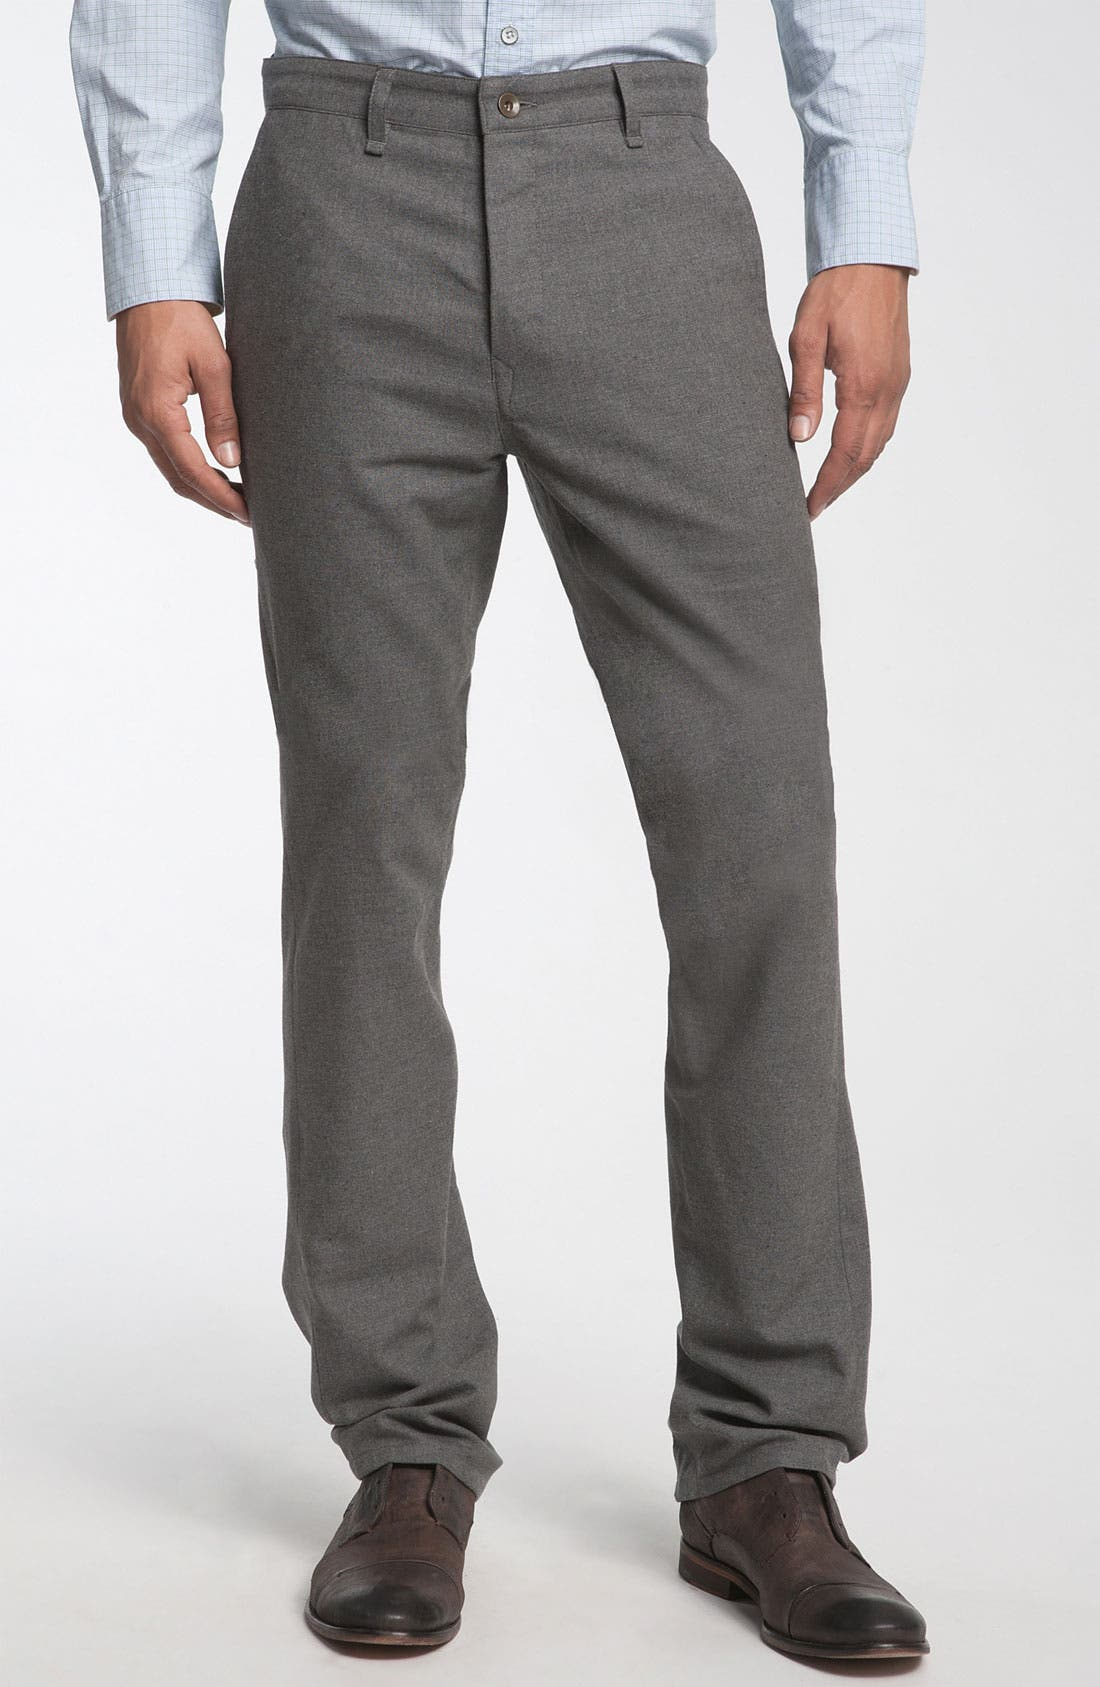 Alternate Image 1 Selected - rag & bone 'Blade III' Cotton Pants